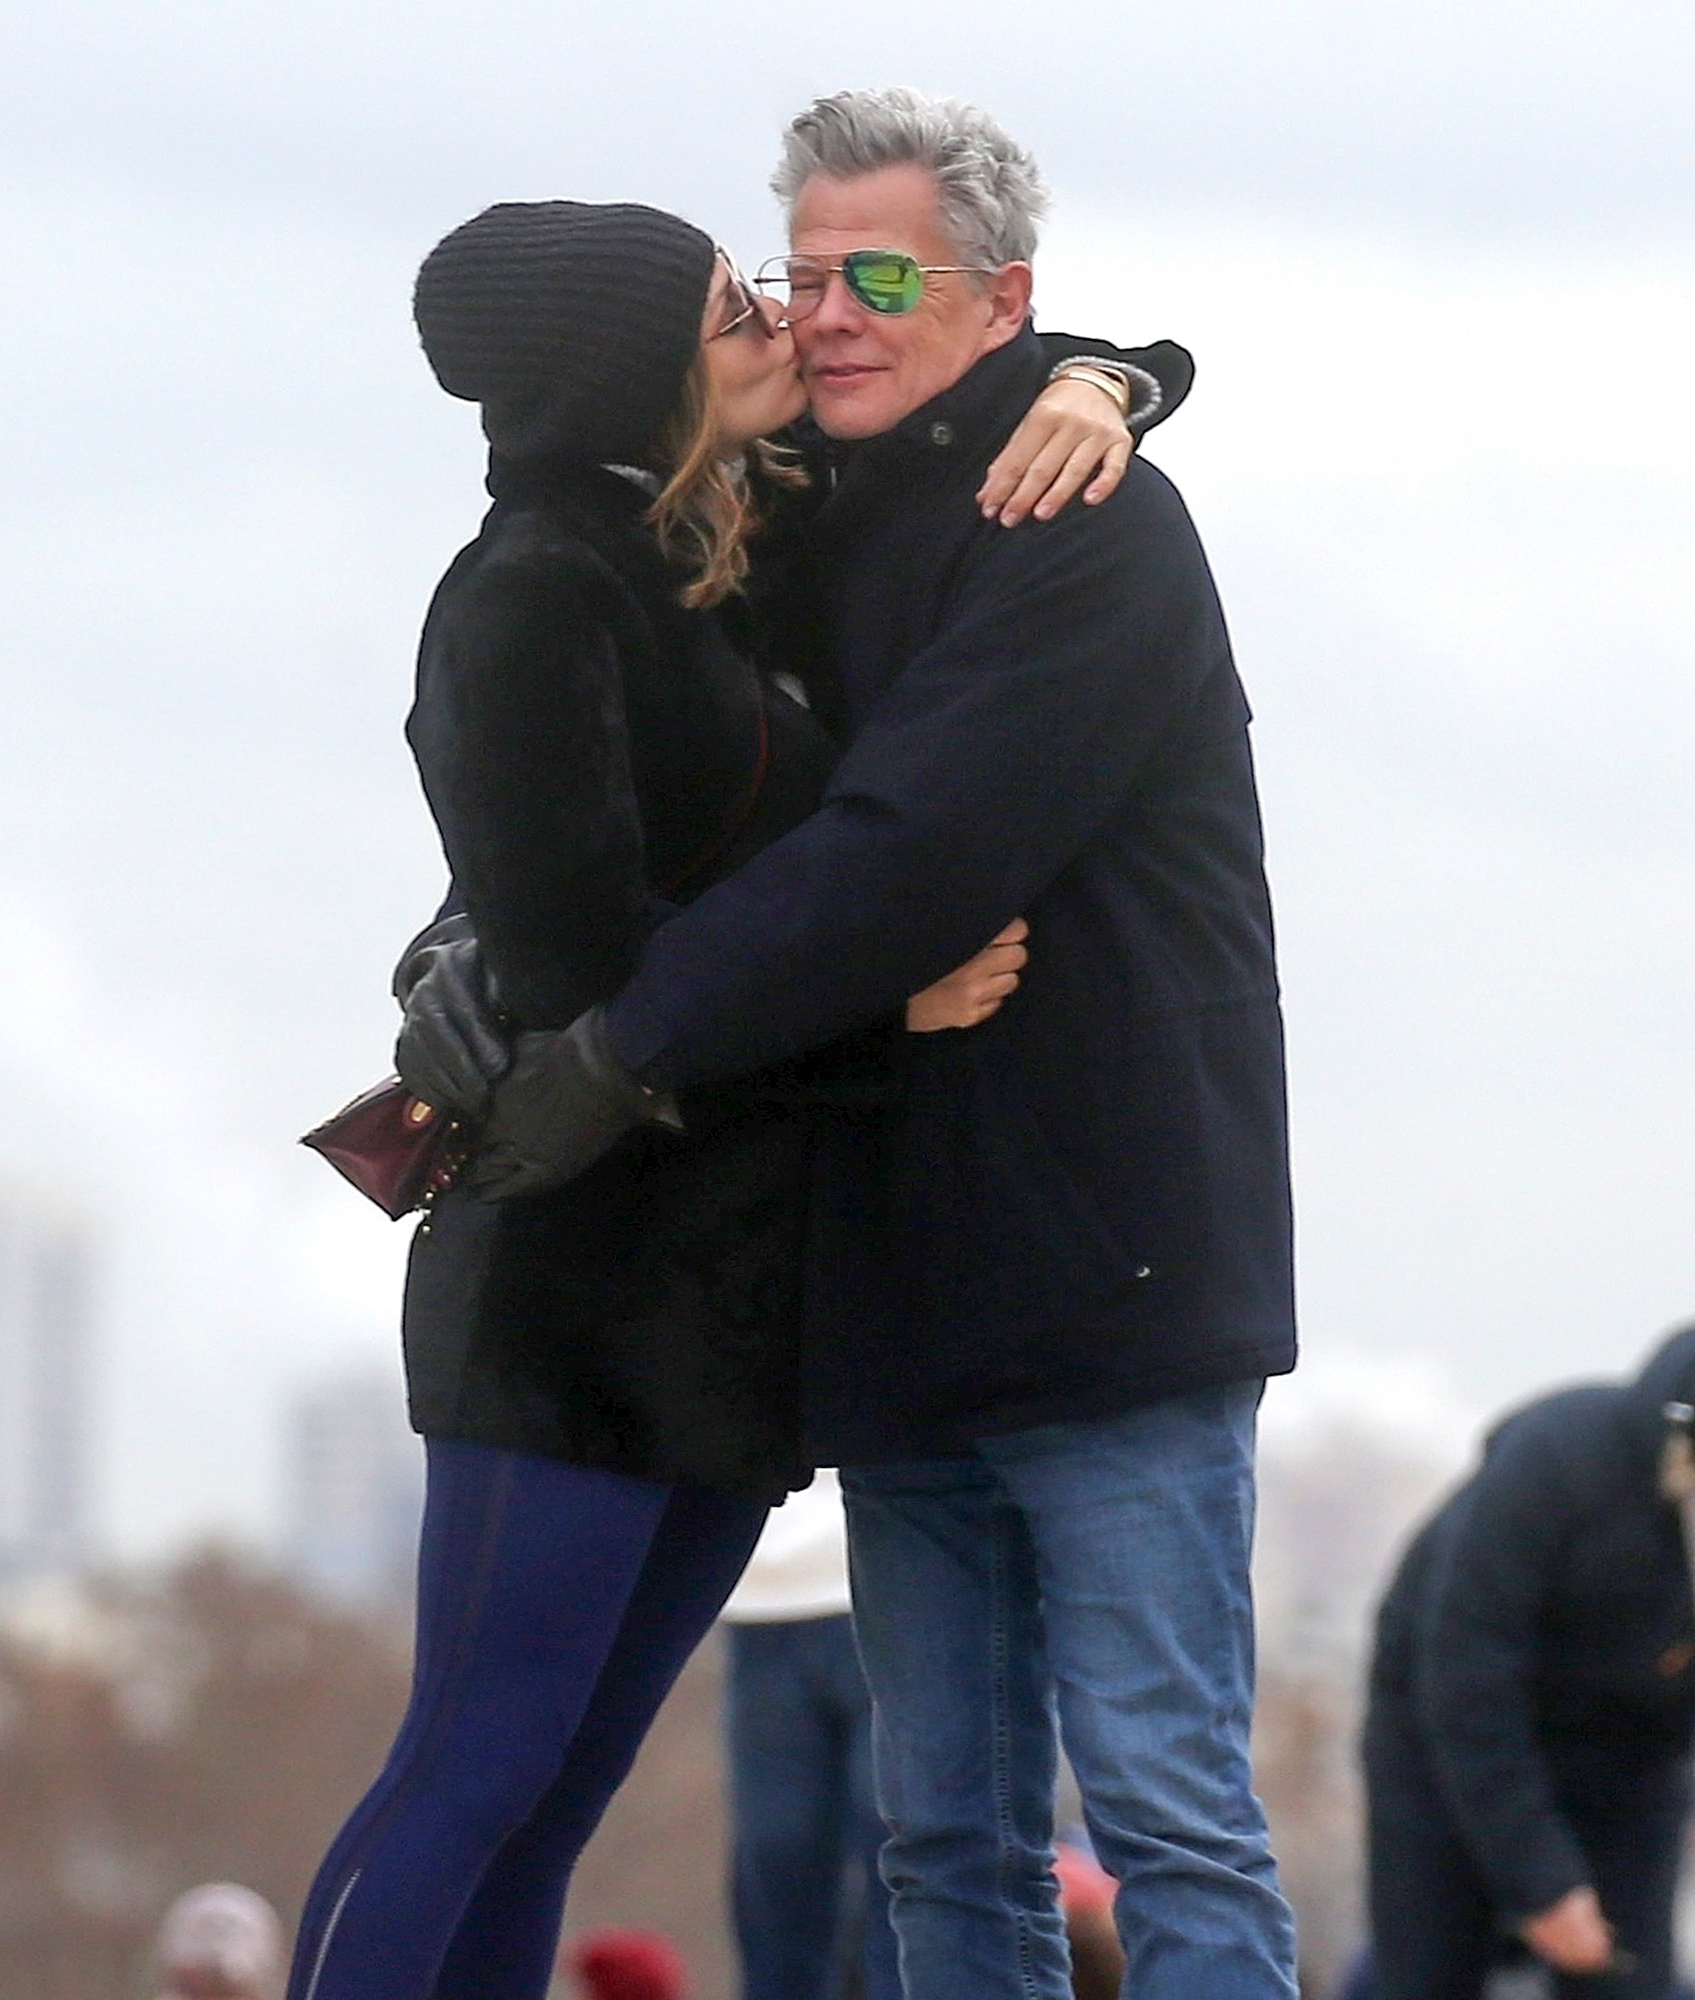 *EXCLUSIVE* Katharine McPhee and David Foster take their love to Paris **WEB EMBARGO UNTIL 9AM PST ON 12/28/17**